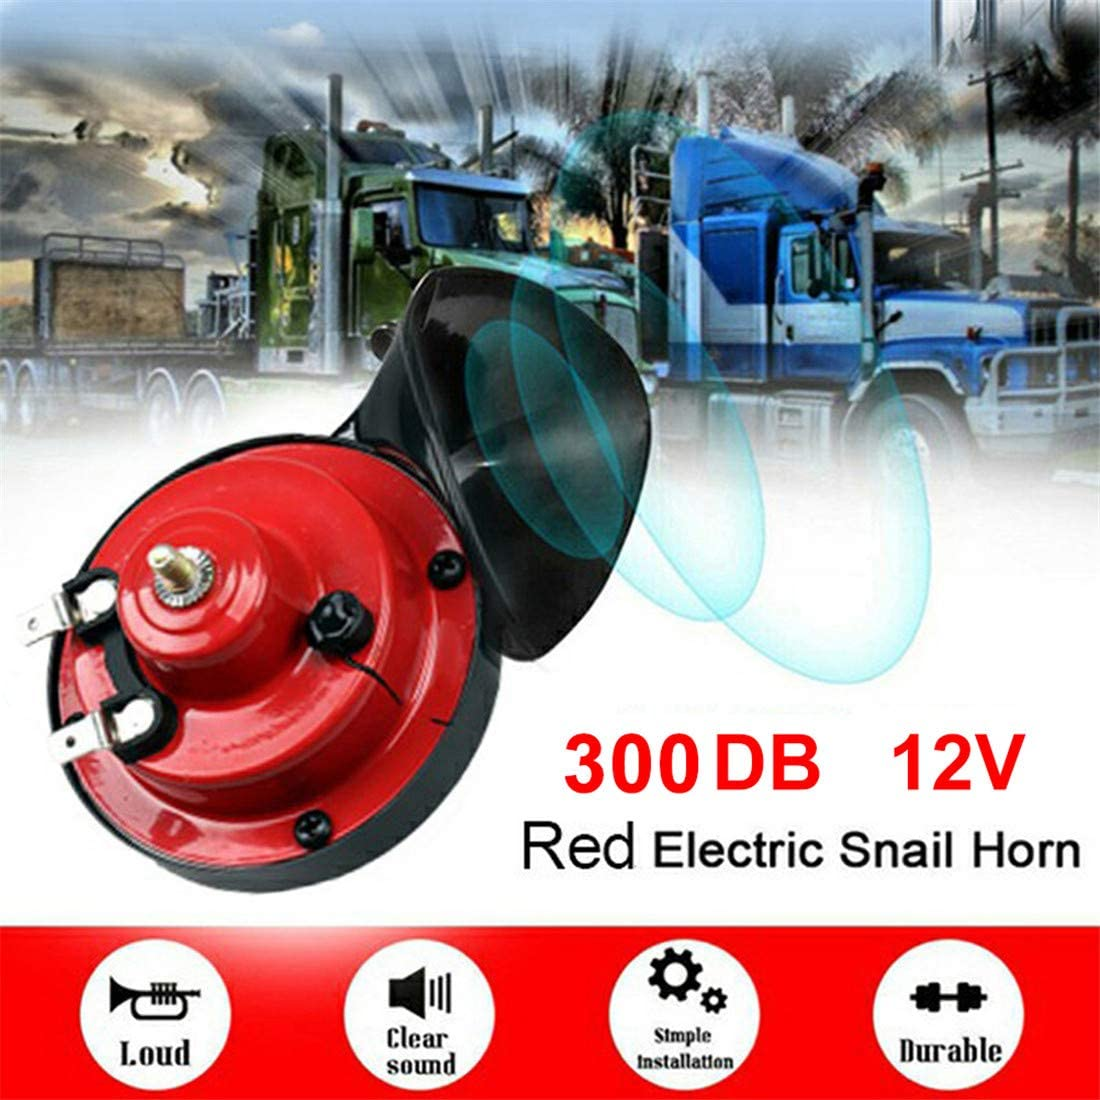 Loud Air Electric Snail Double Horn 12v Double Horn Raging Sound for Car Motorcycle Bikes and Boats,1 Pair 300dB Train Horn for Trucks